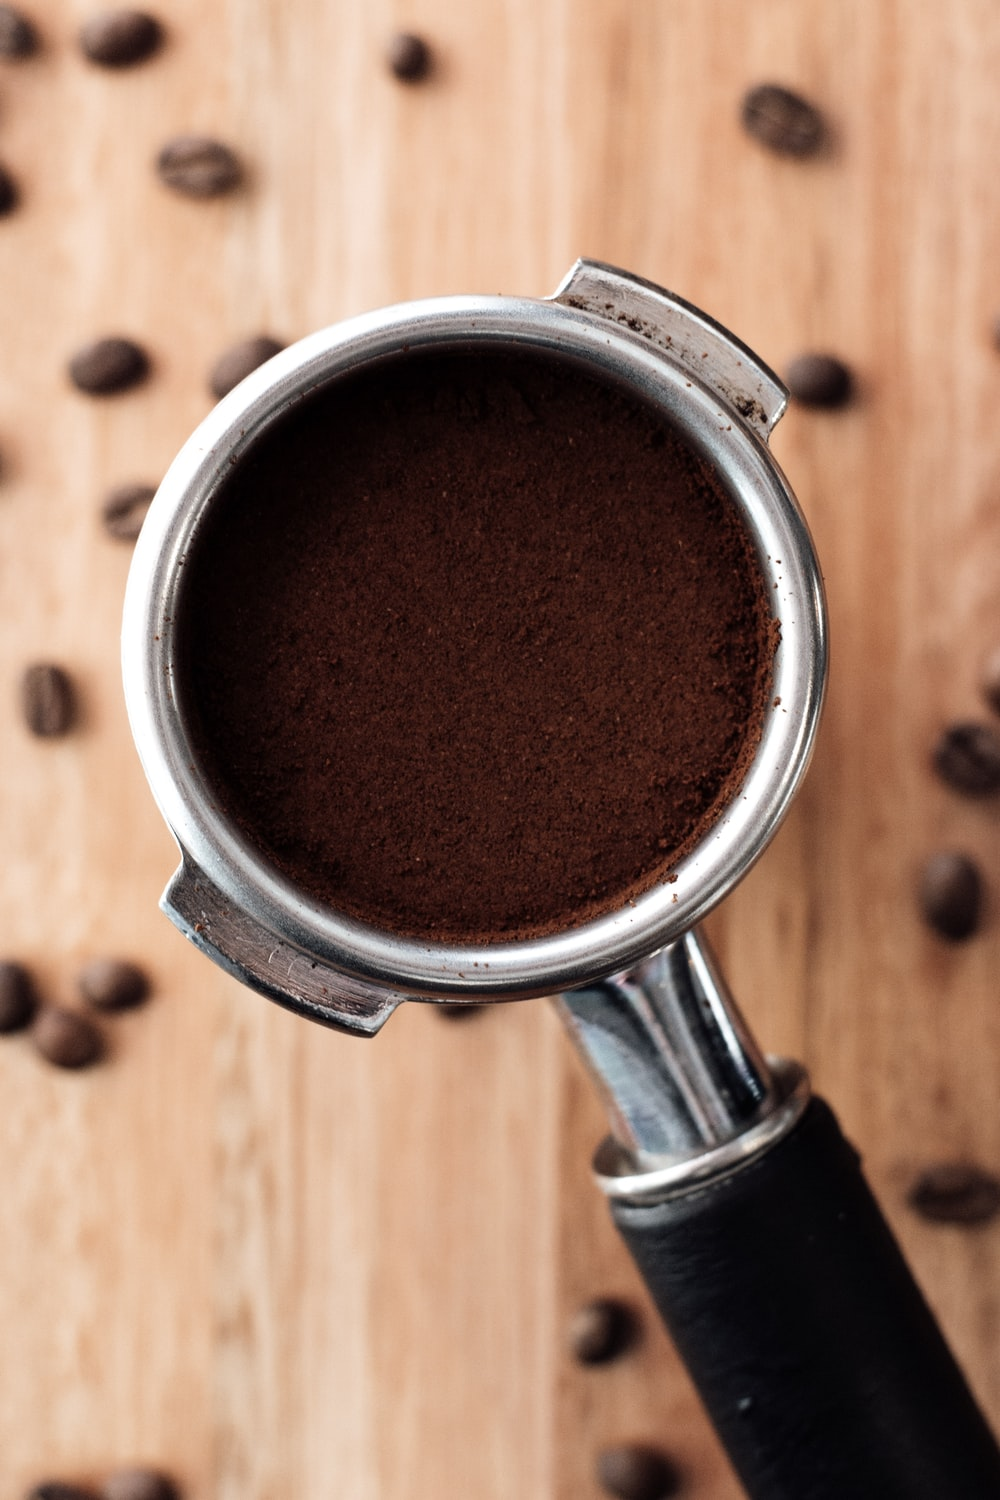 ground coffee on stainless steel cup